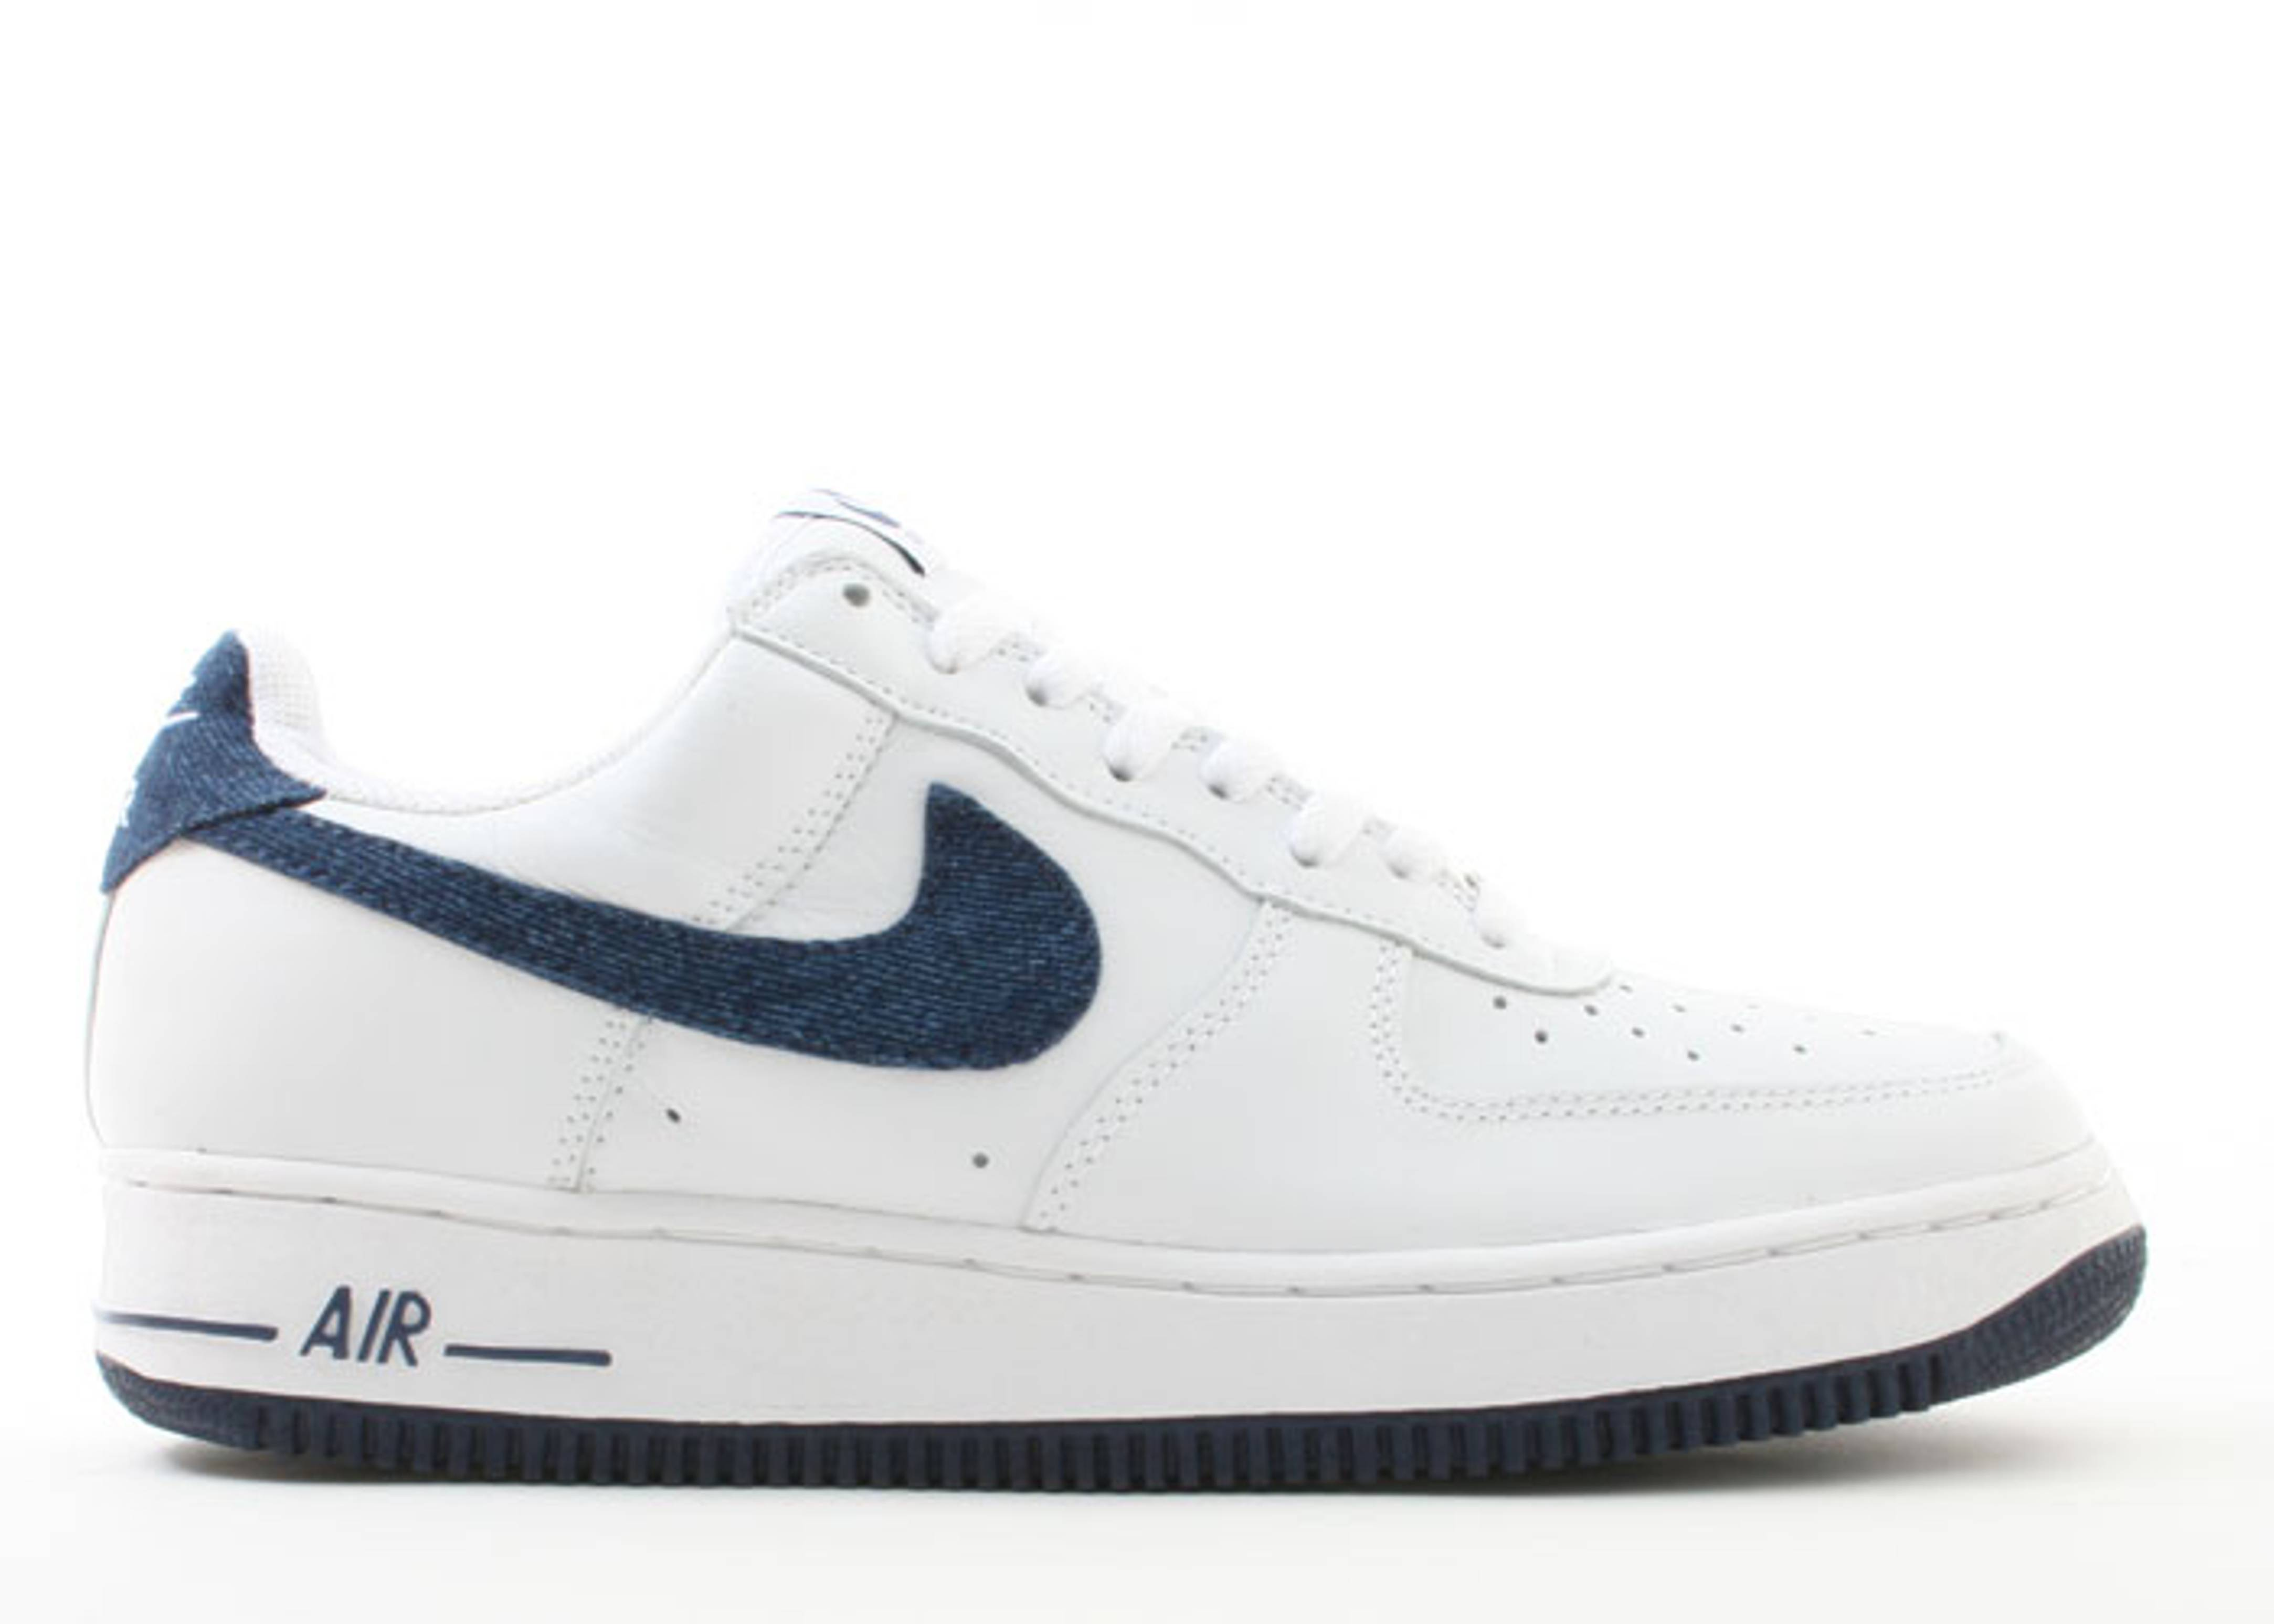 Nike NIKE air force 1 sneakers AIR FORCE 1 LOW 624,040 143 low men shoes white